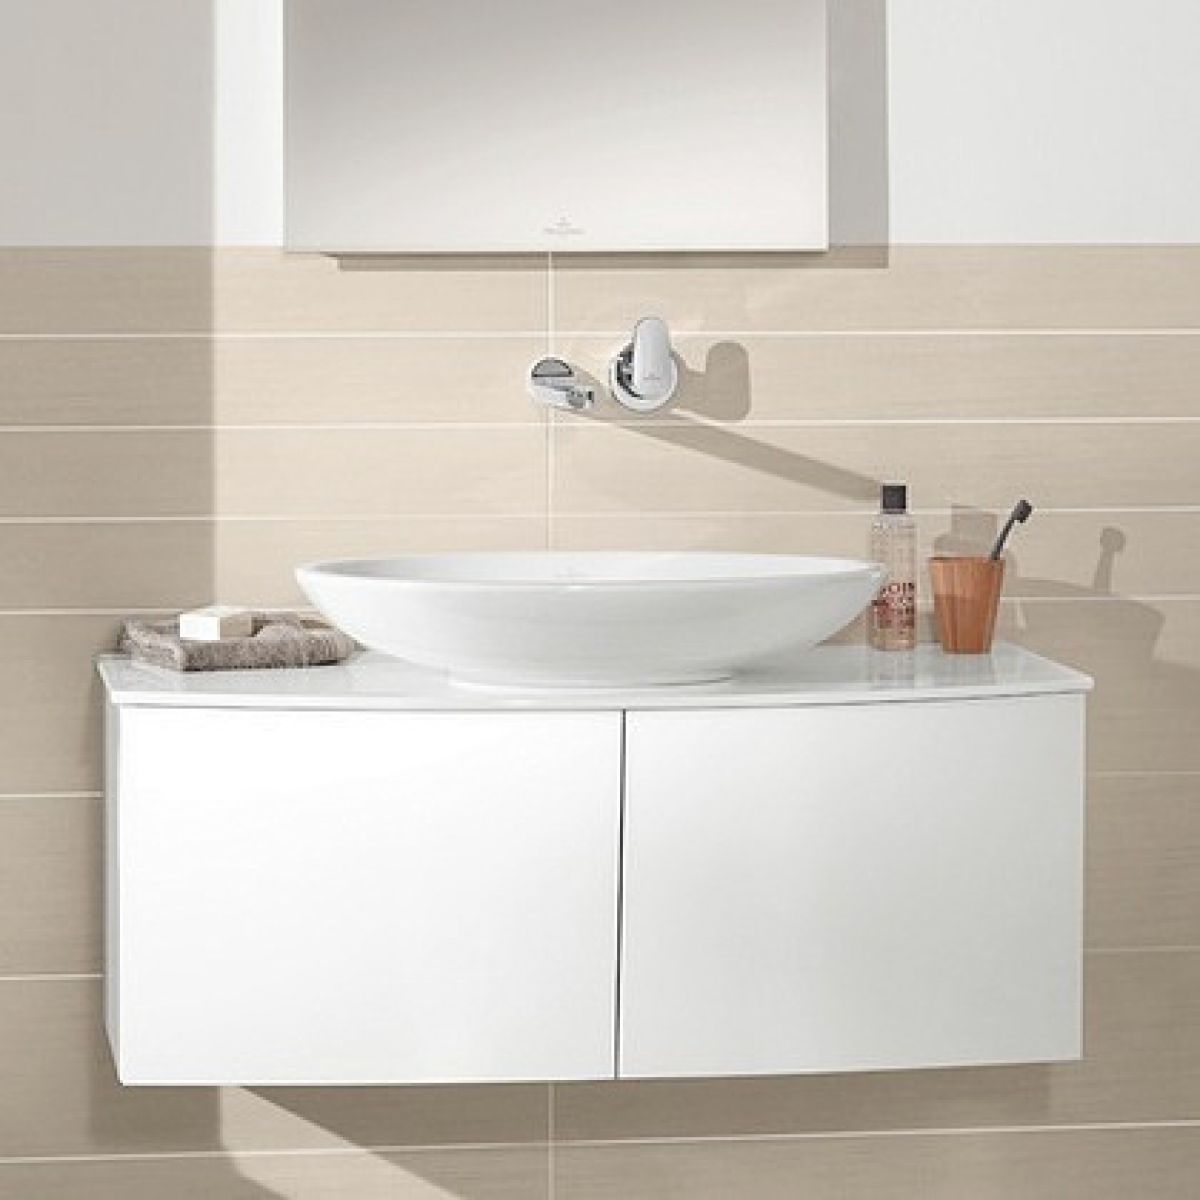 Waschbecken Oval Aufsatz Efinewines Villeroy Boch Loop Friends Oval Surface Mounted Basin